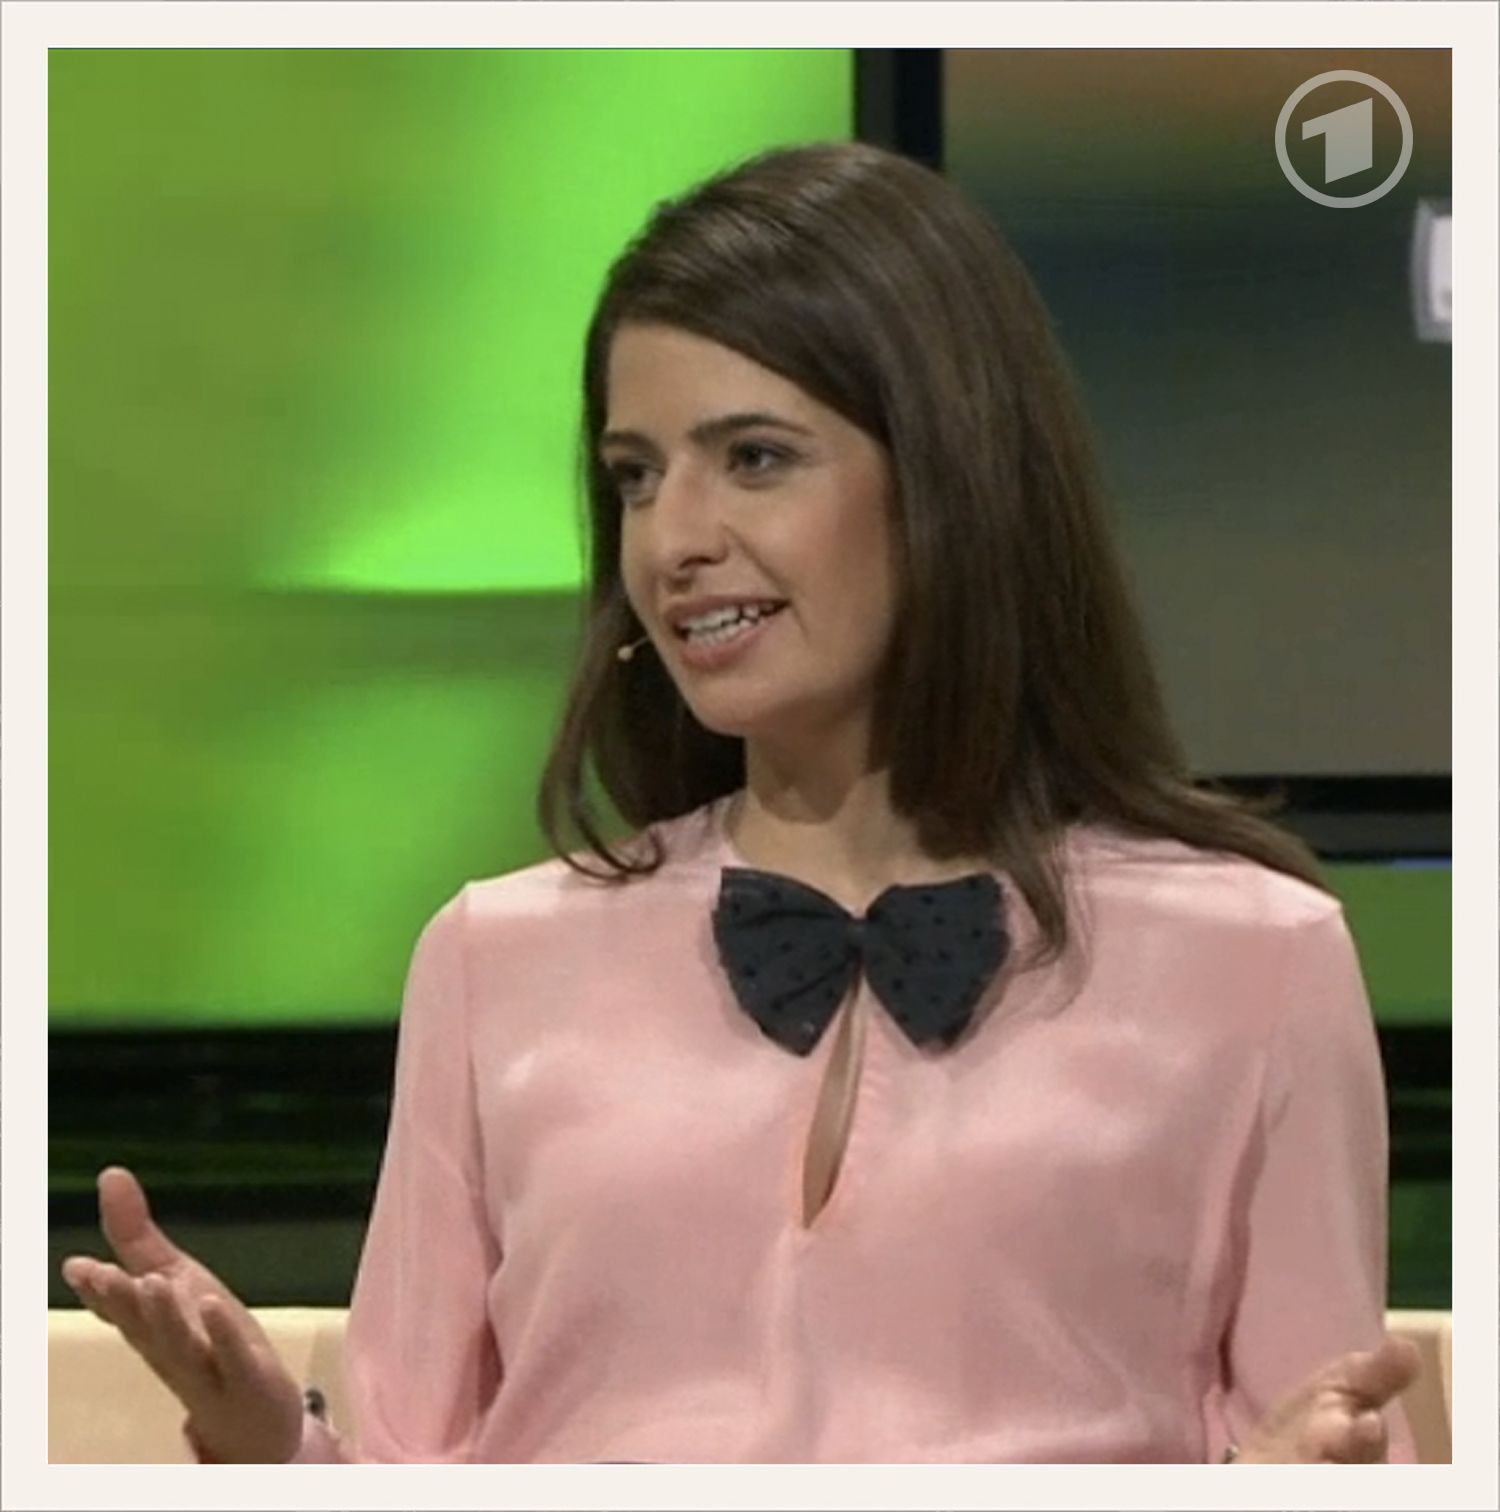 Just Gorgeous Linda Zervakis Wearing Our Blouse In Ard Yesterday